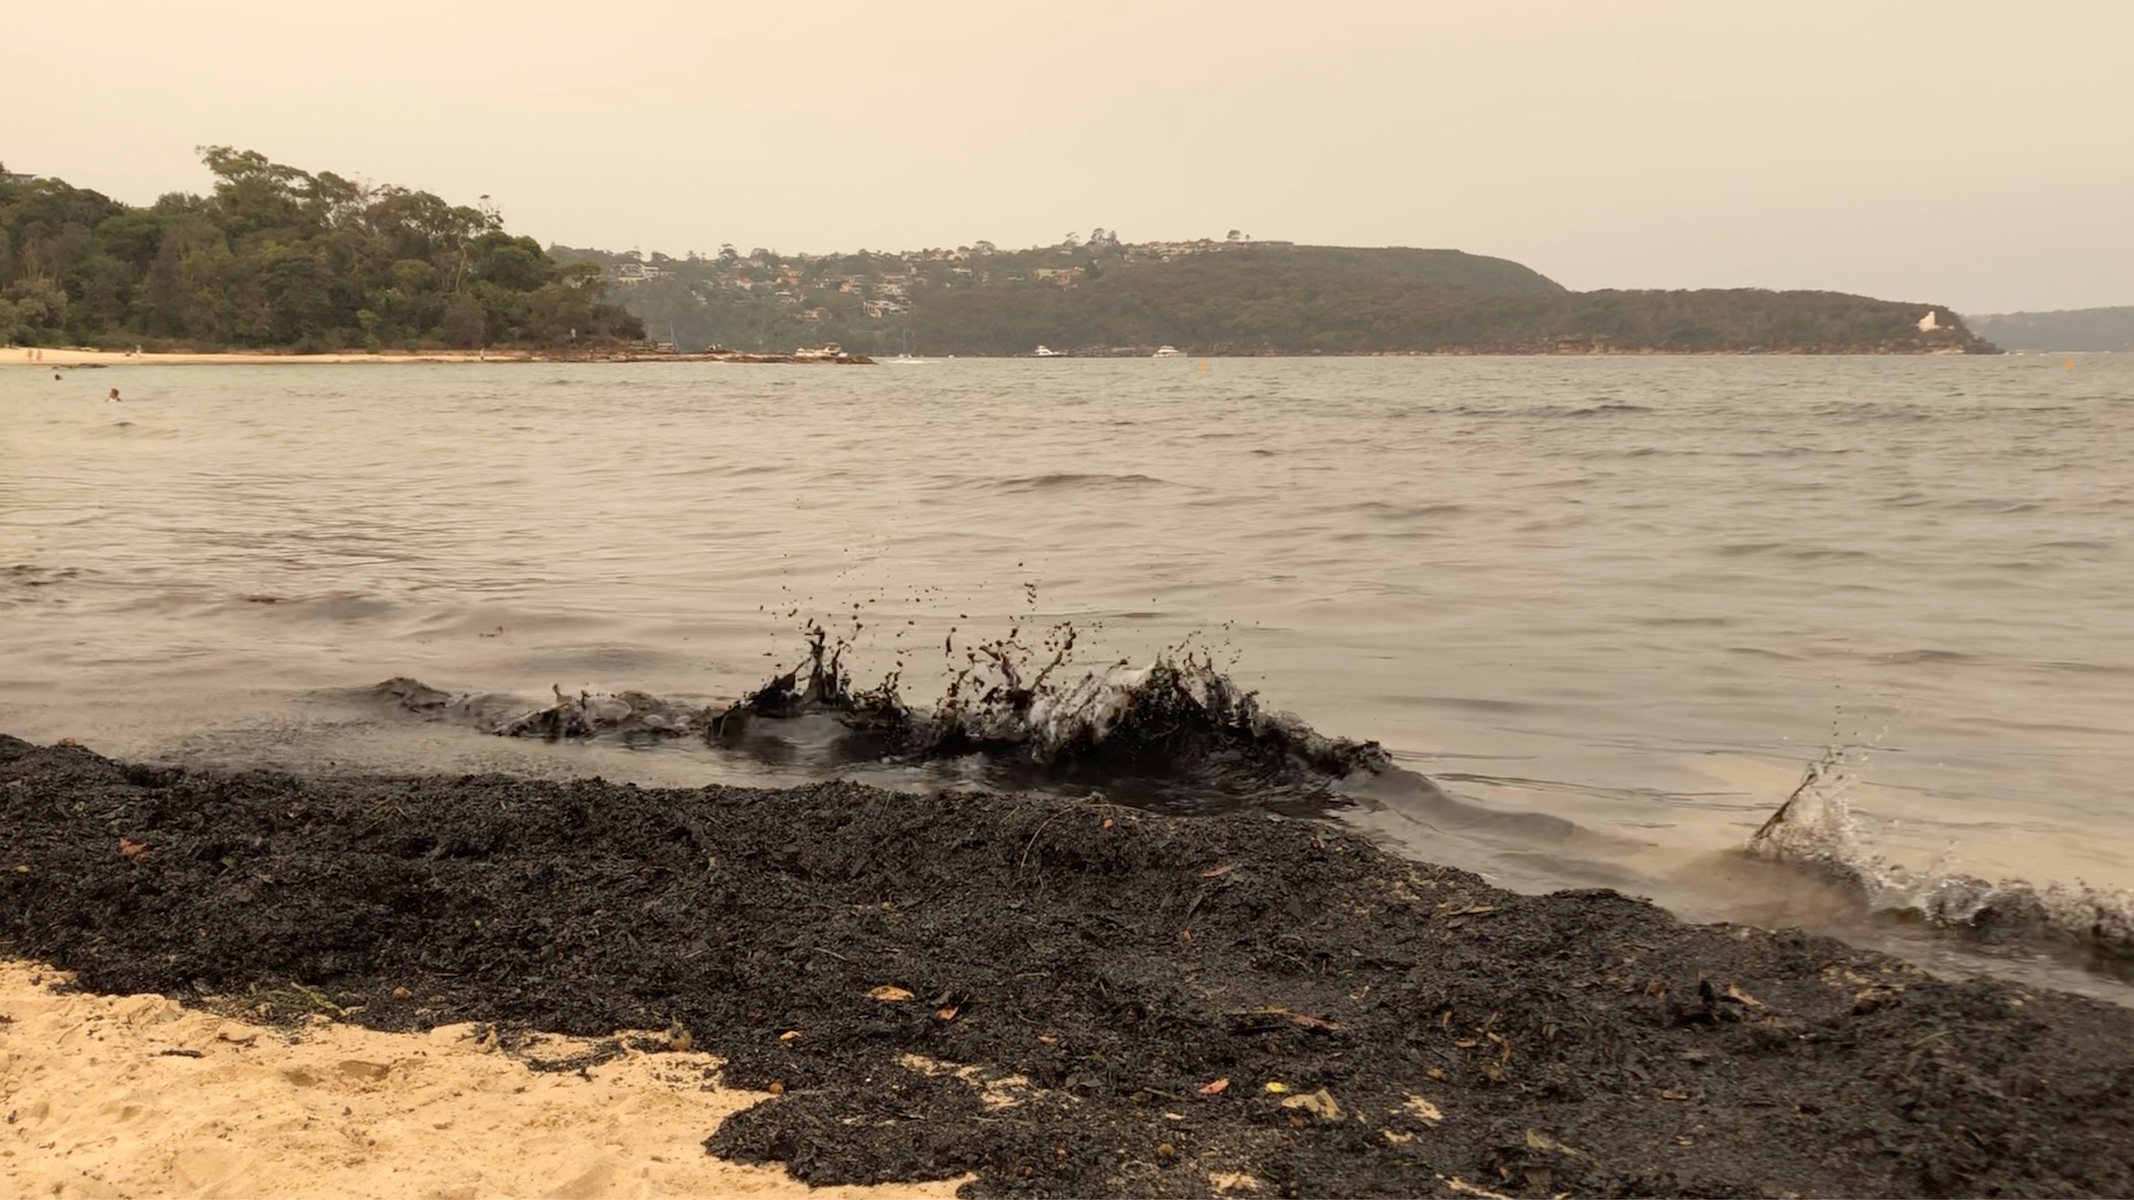 Ash from bushfires that affected New South Wales in the last days is seen on Balmoral Beach in Sydney